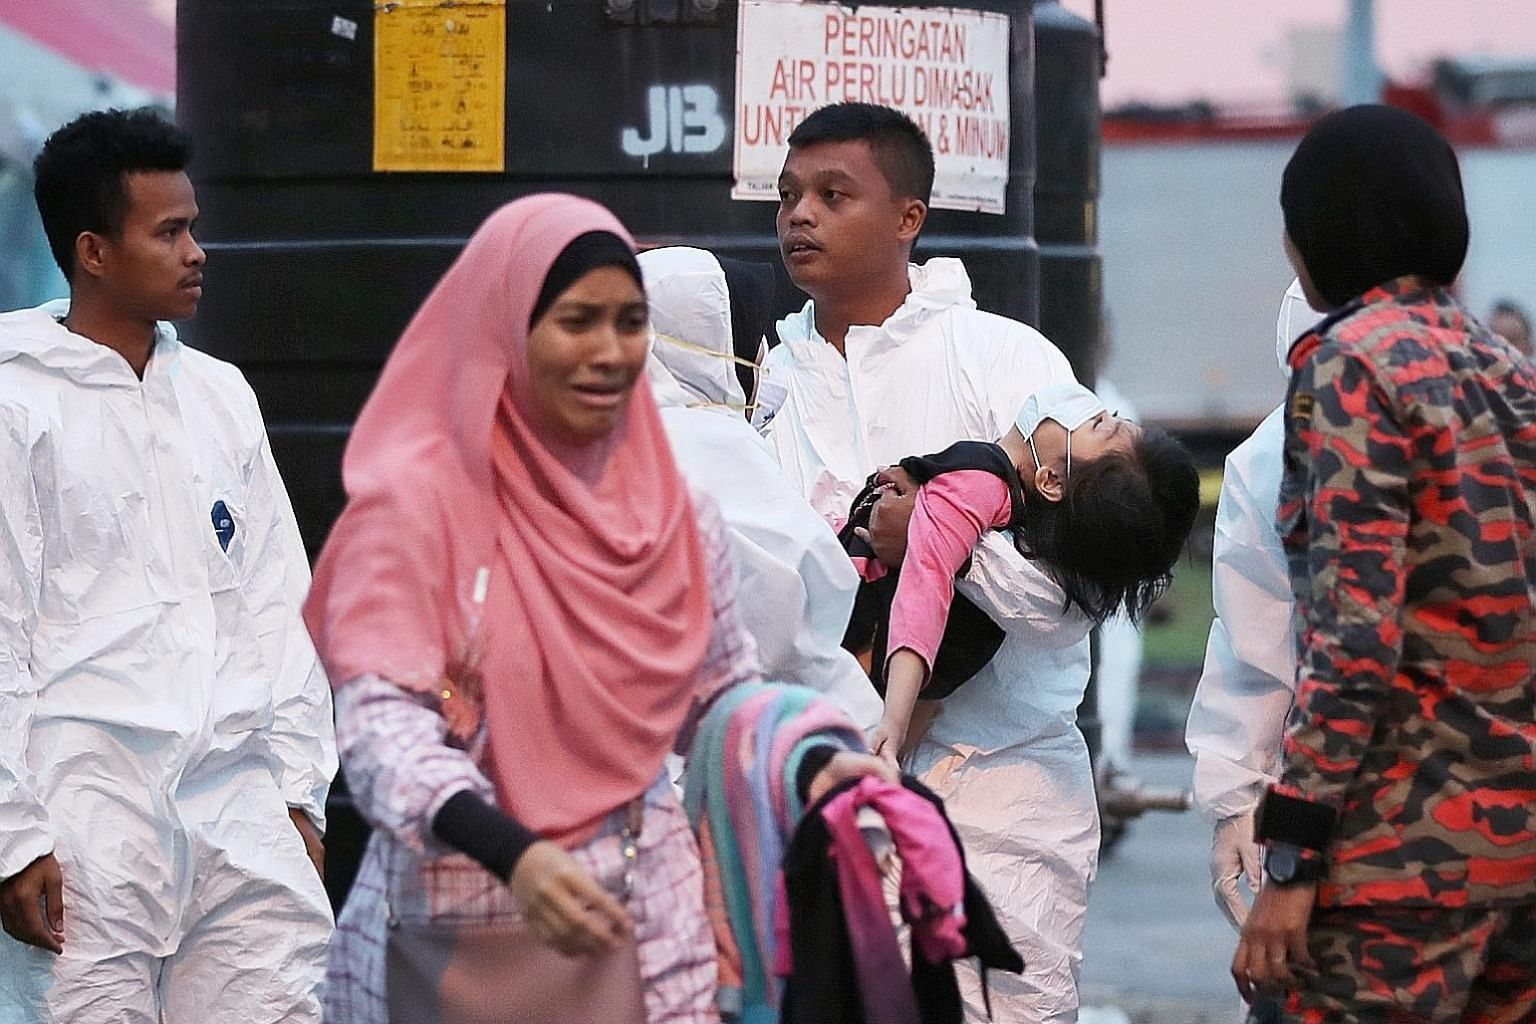 A child being carried to an ambulance in Pasir Gudang last month. Schools in the area in Johor were shut after students reported breathing difficulties and vomiting that were believed to have been caused by air pollution.